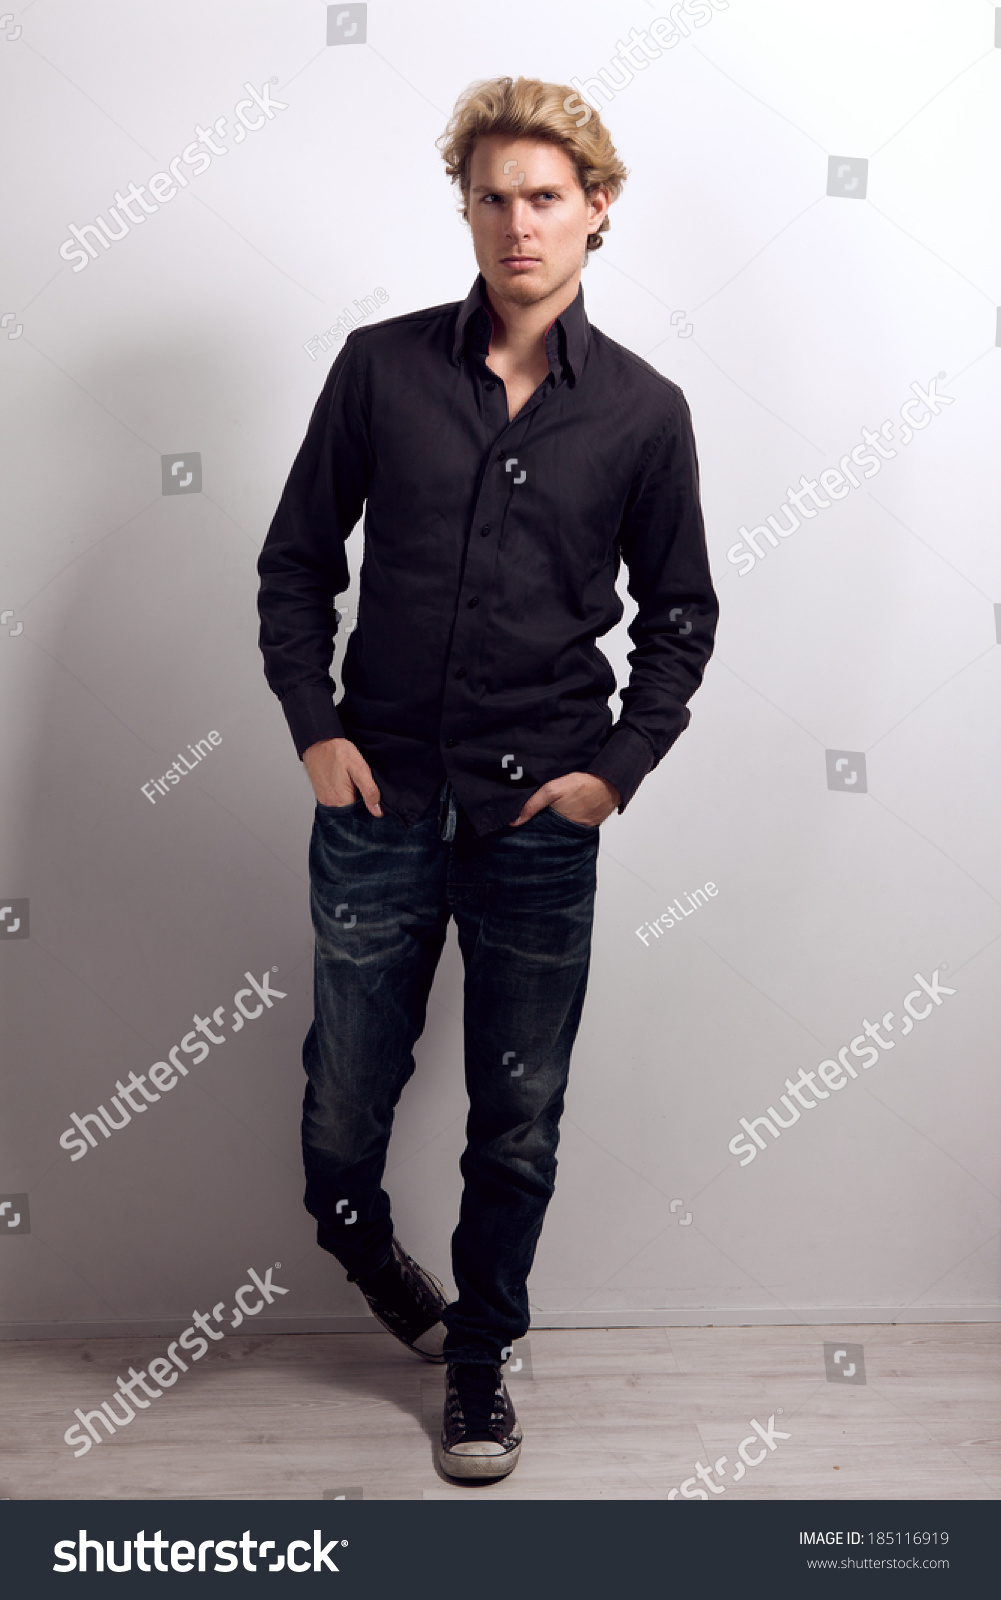 Attractive Male With Blonde Hair Dressed In Black Shirt: black shirt blue jeans